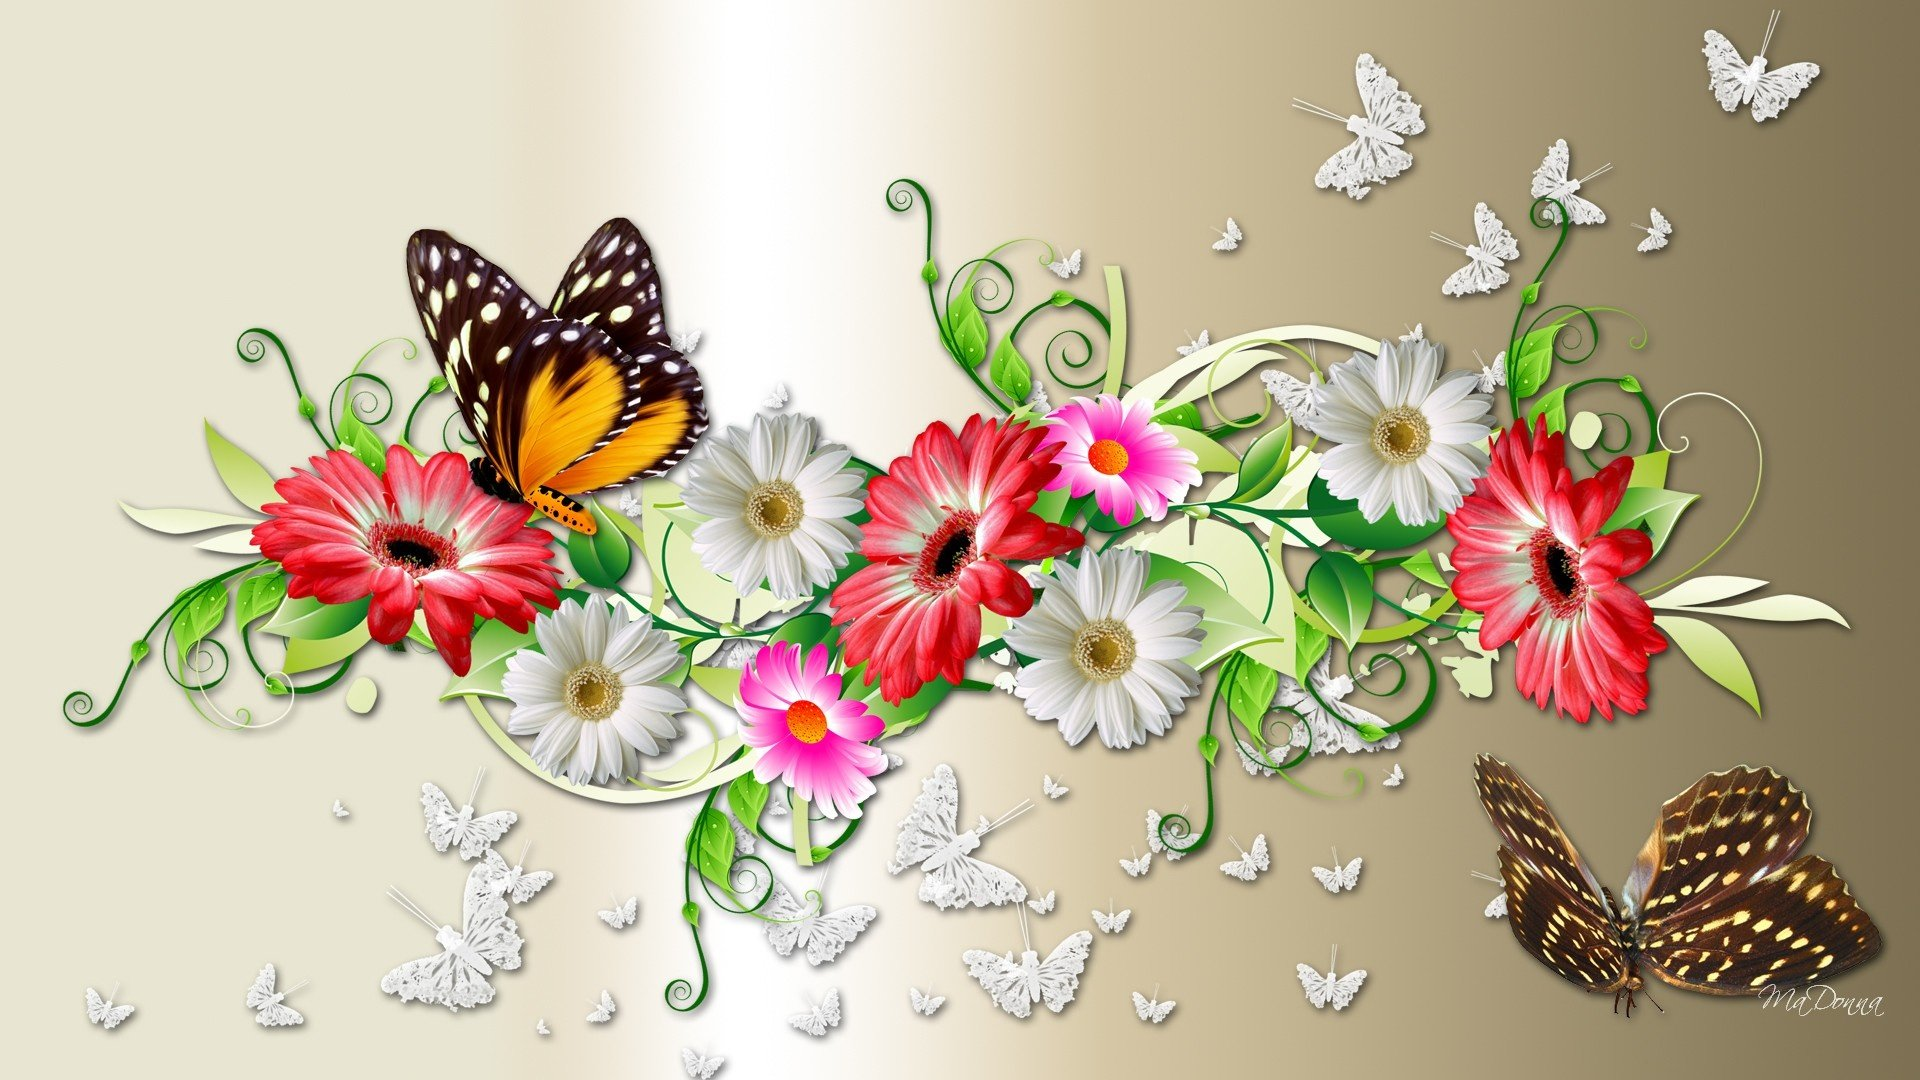 Erflies Flowers Colors Decorations Wallpaper 1920x1080